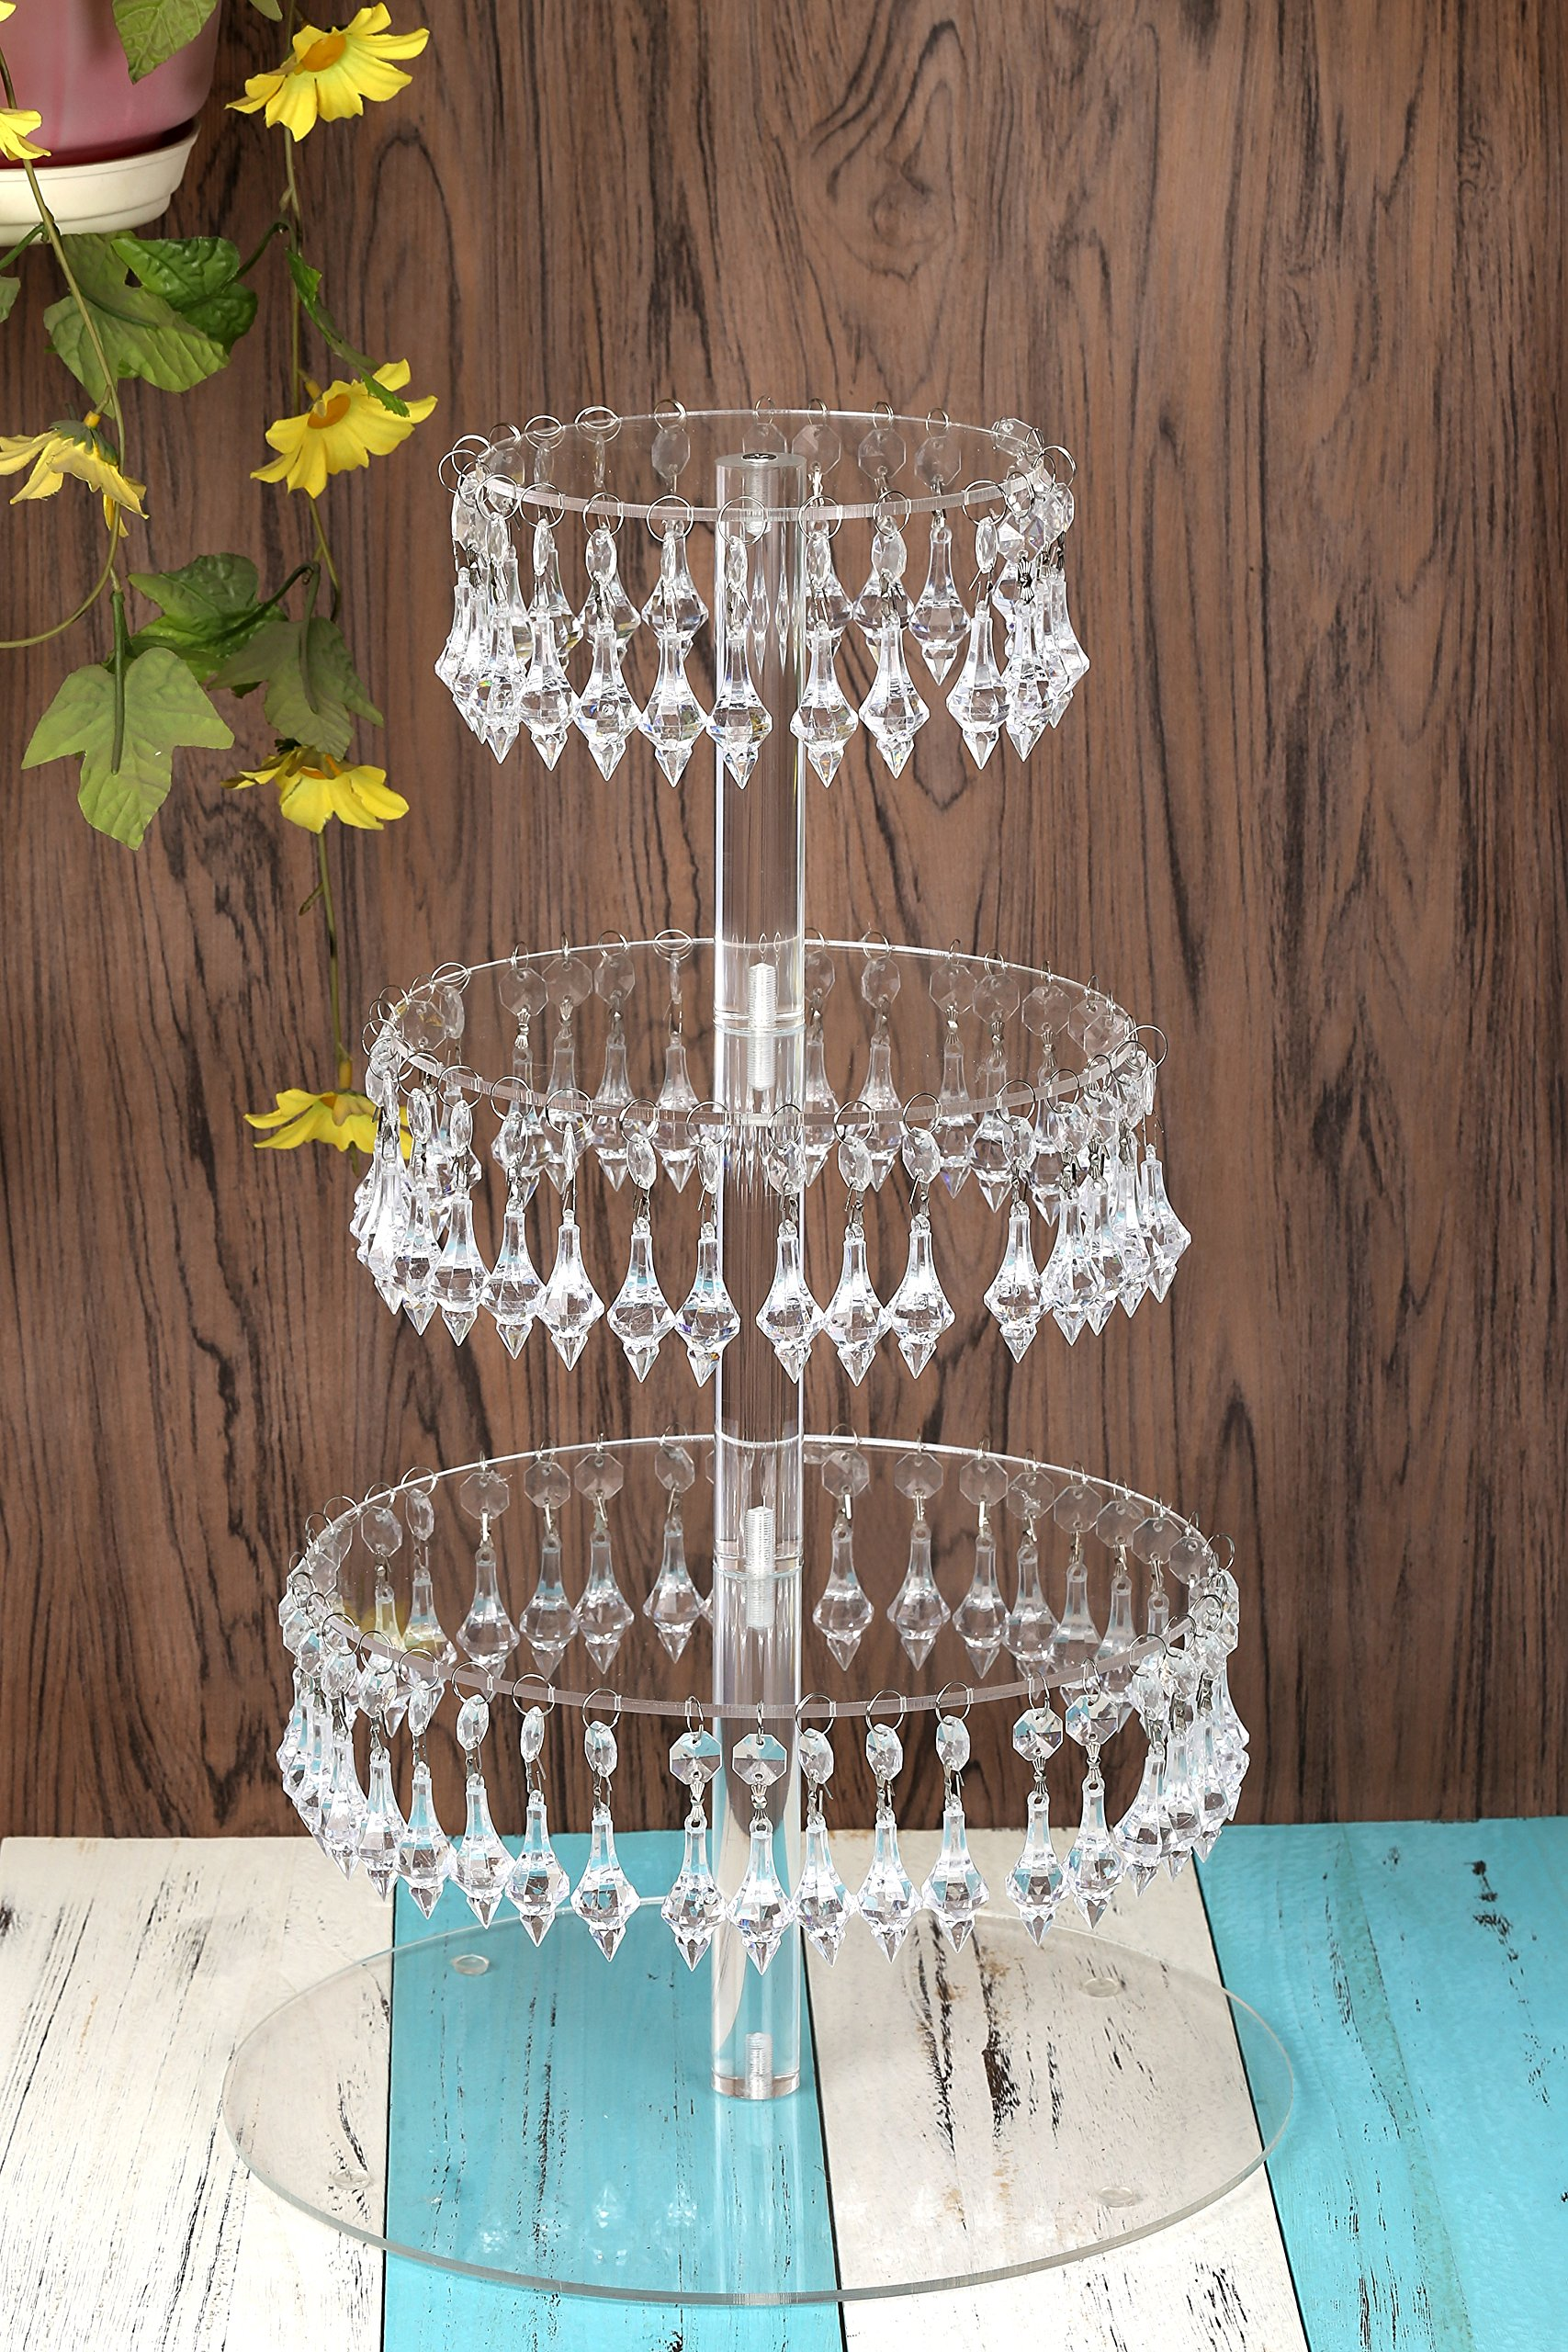 YestBuy Pendant Drill 4 Tier Round Acrylic Cupcake Stand 1 pc/Pack ¡ by YestBuy (Image #2)